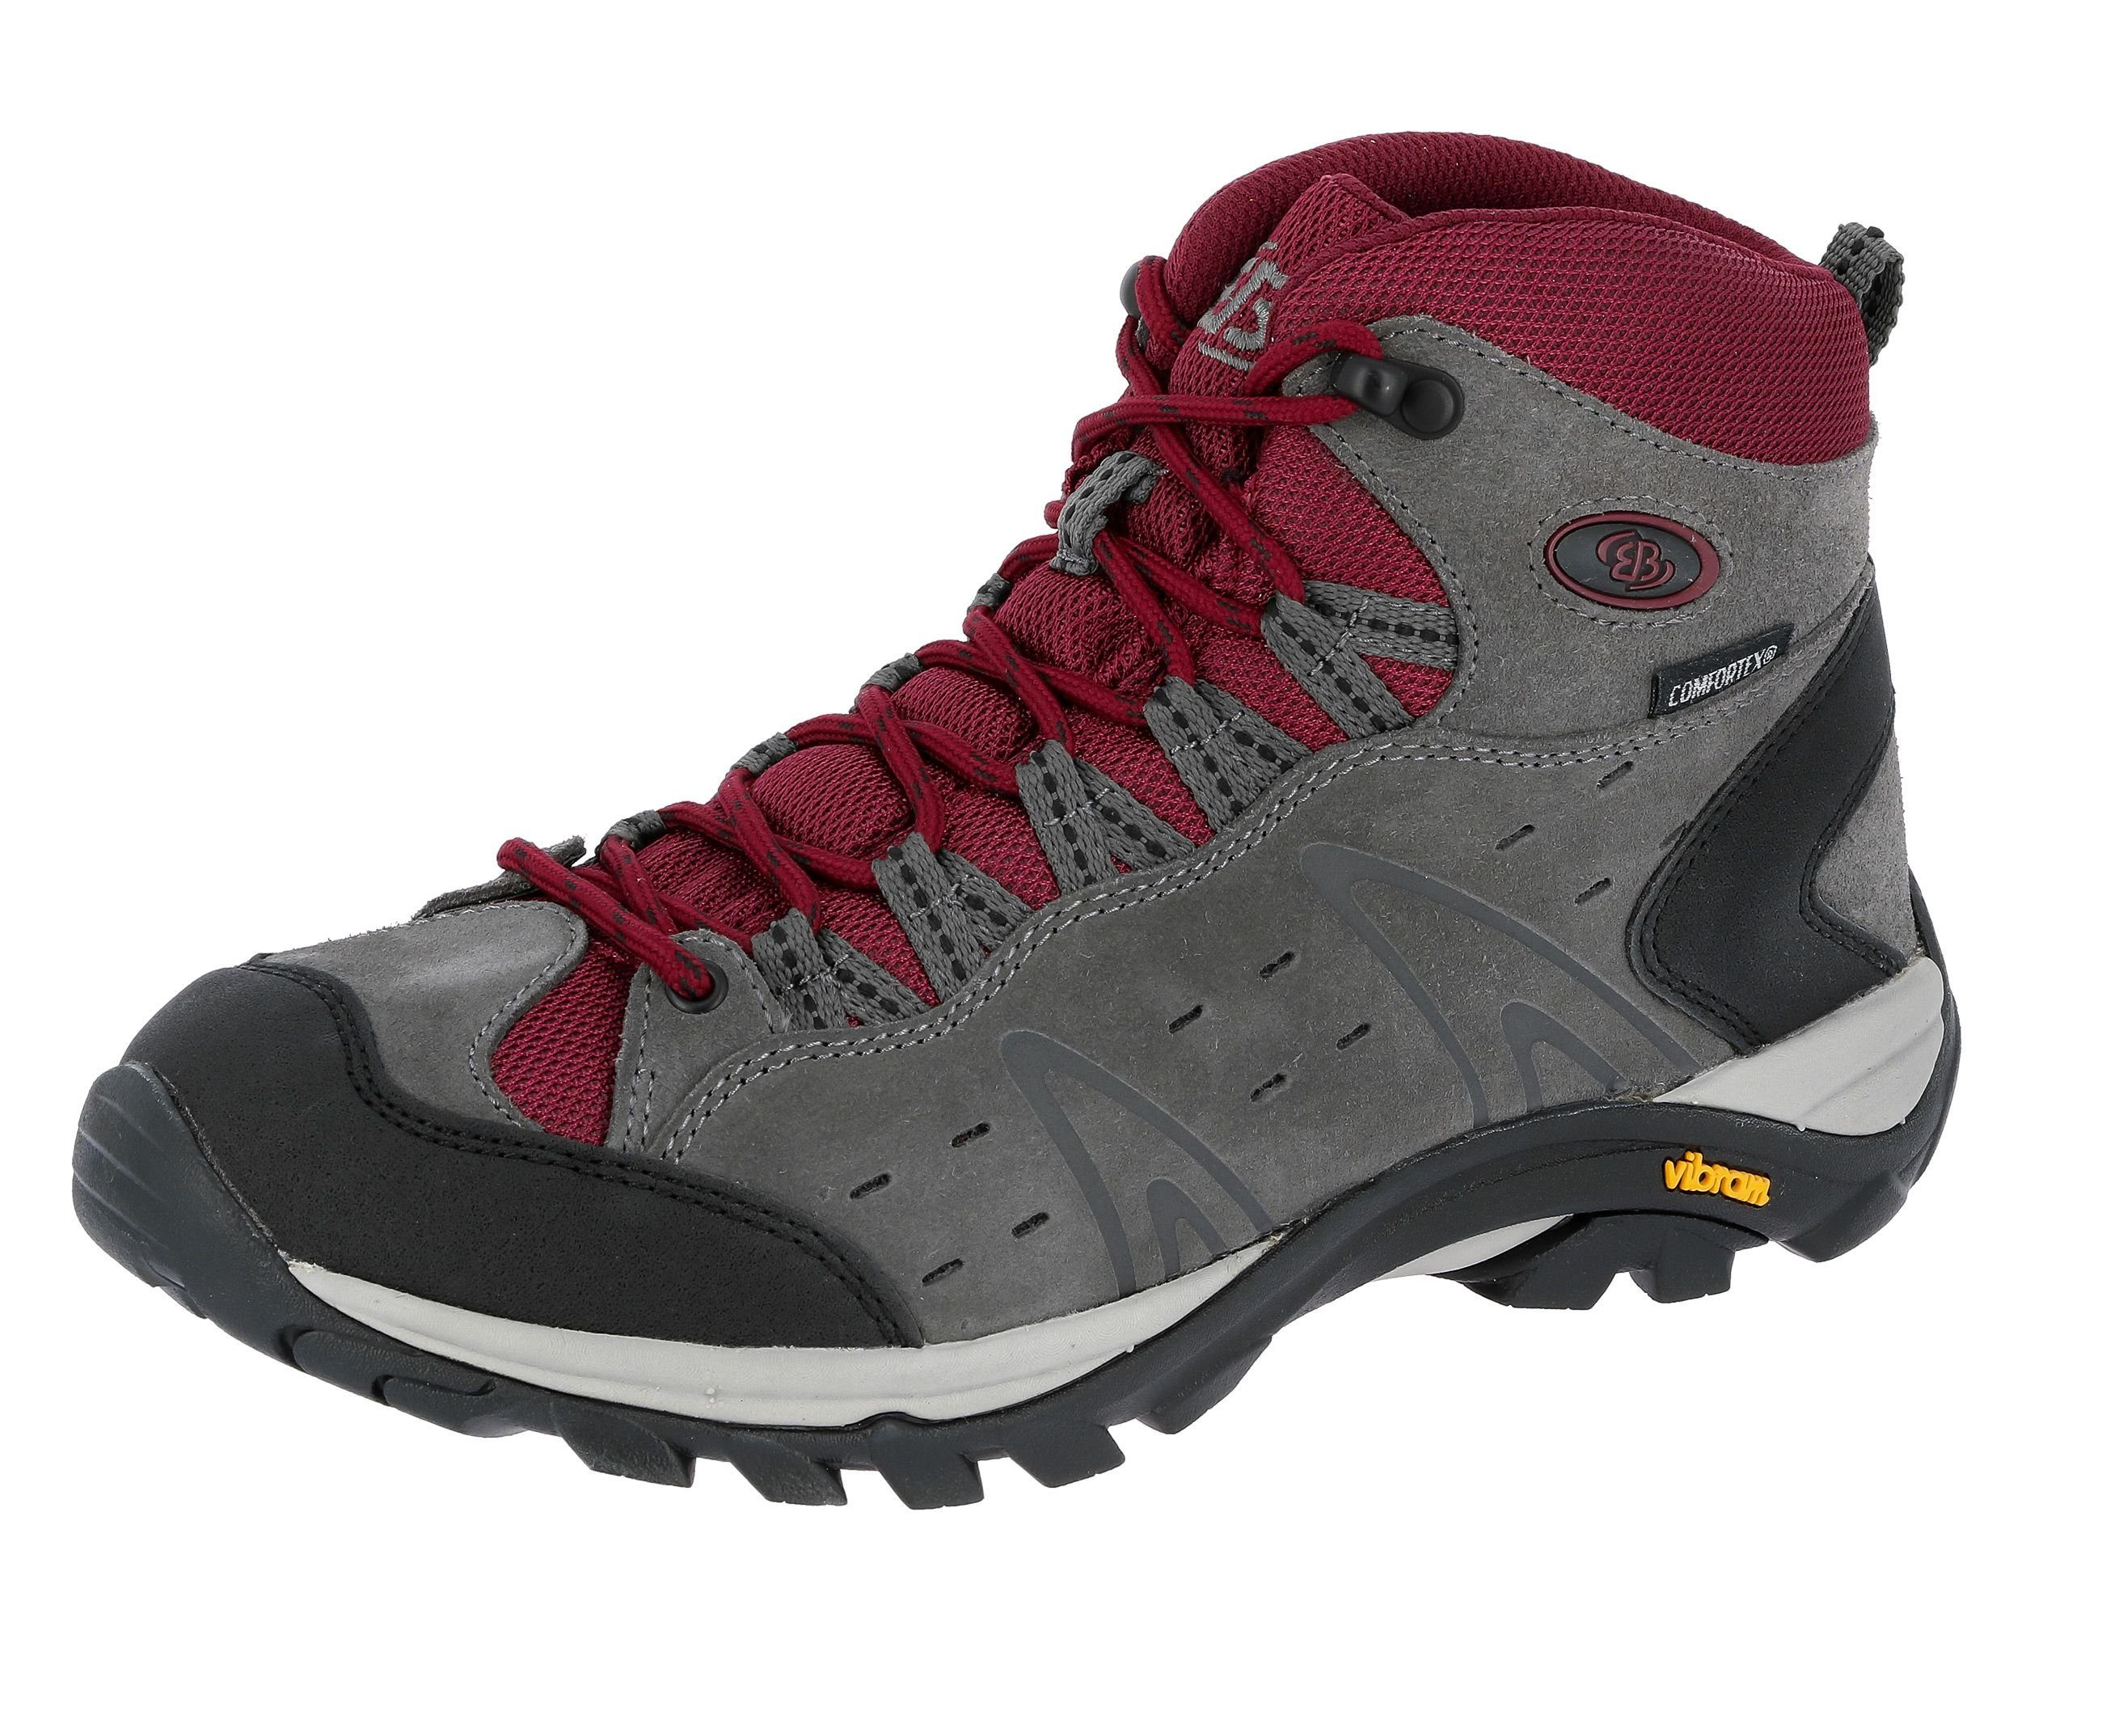 buy popular 0af26 11de2 BRÜTTING Outdoorschuh »Trekkingstiefel Mount Bona High« günstig kaufen |  BAUR